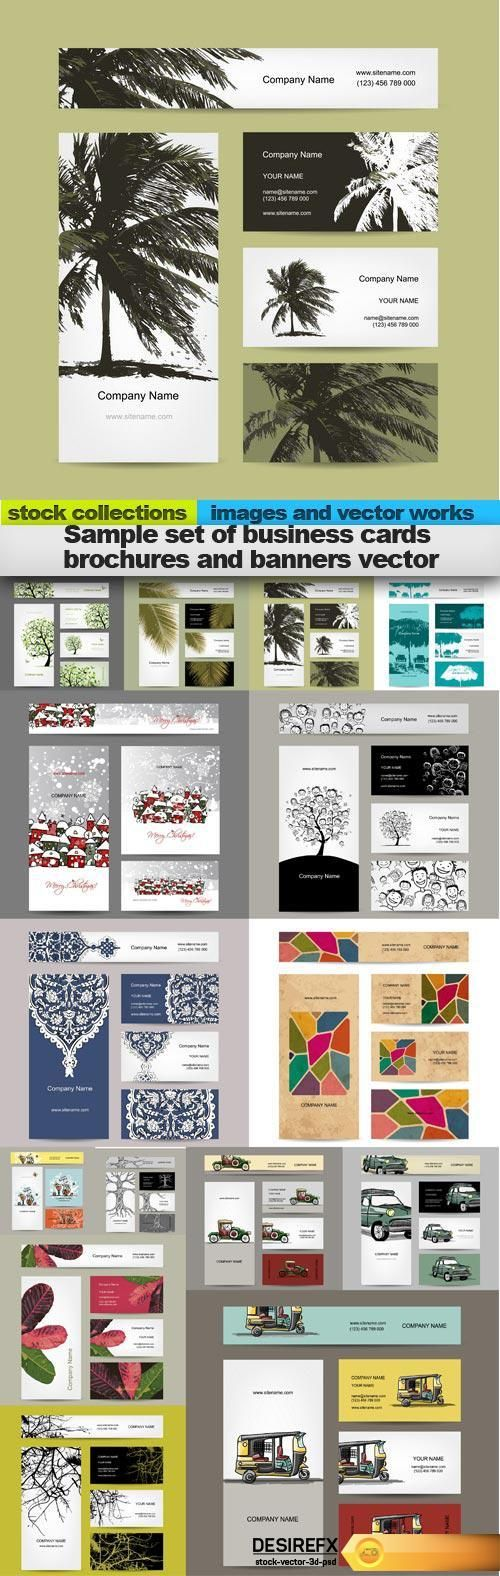 Find your Grapfix Desire With US http://www.desirefx.me/sample-set-of-business-cards-brochures-and-banners-vector-15-x-eps/